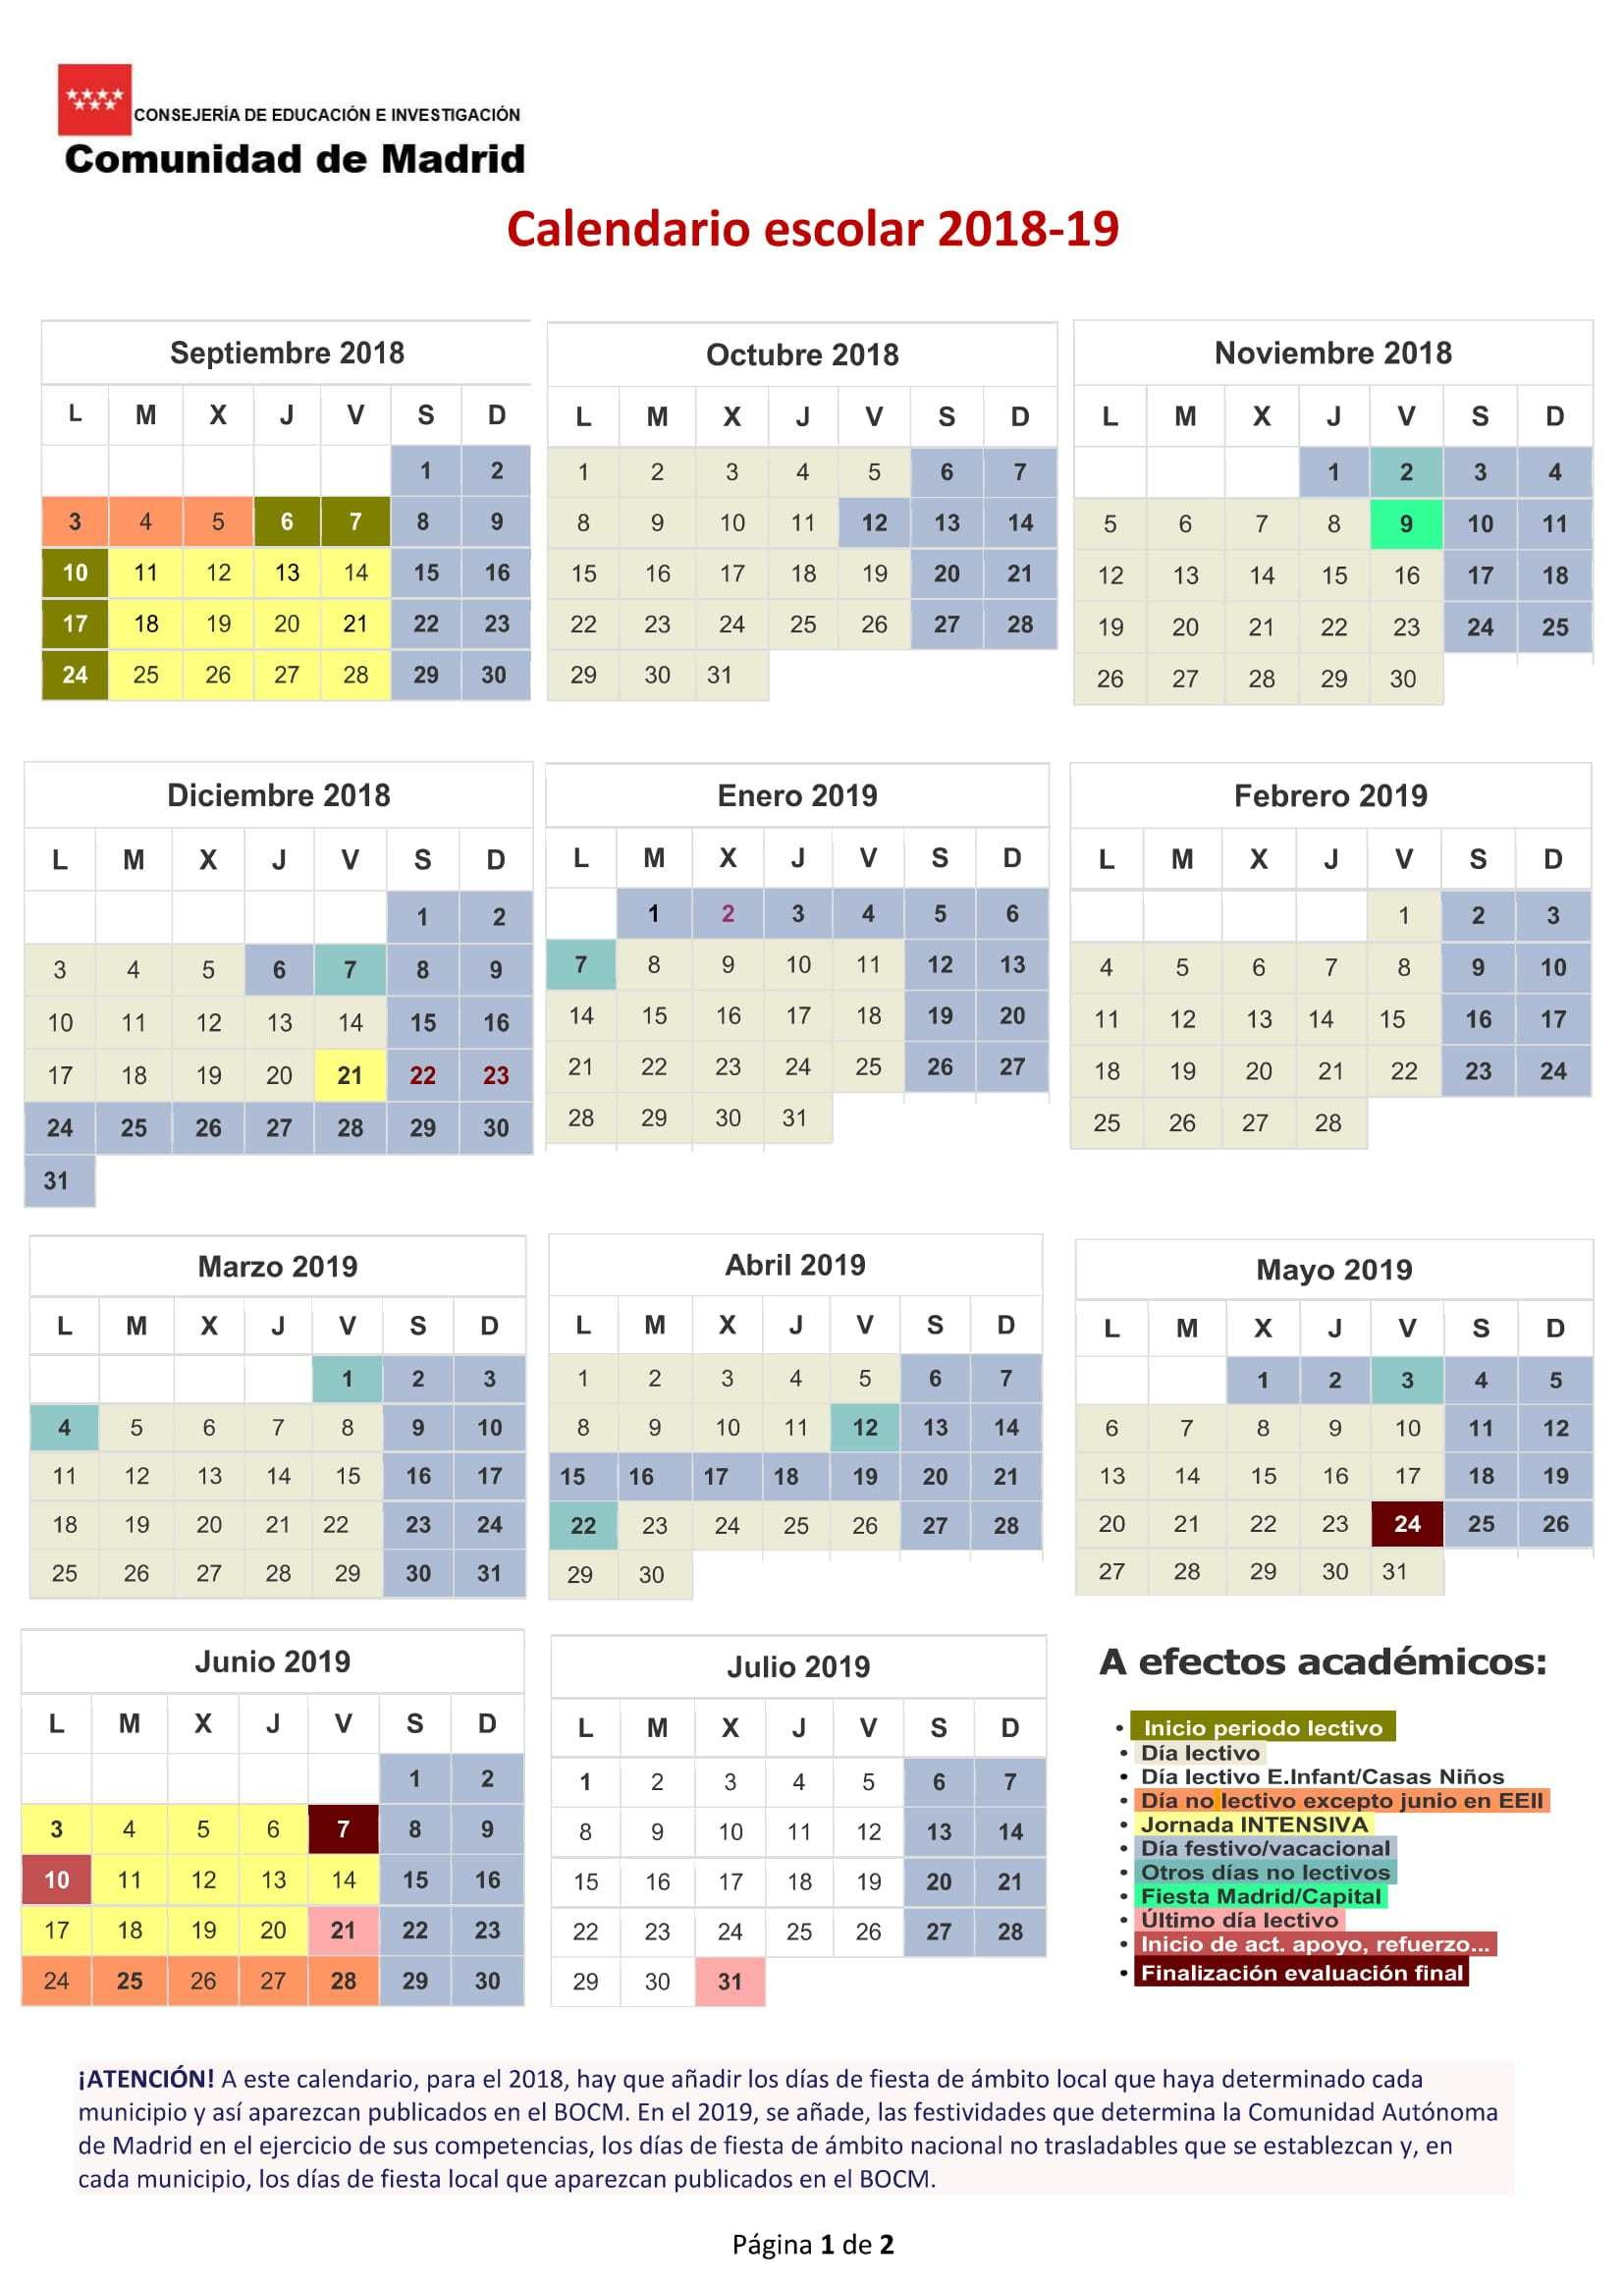 Calendario 2019 Con Semanas Y Festivos Colombia Actual Abril 2019 Con Festivos Word Calendario T Of Calendario 2019 Con Semanas Y Festivos Colombia Actual Abril 2019 Con Festivos Word Calendario T